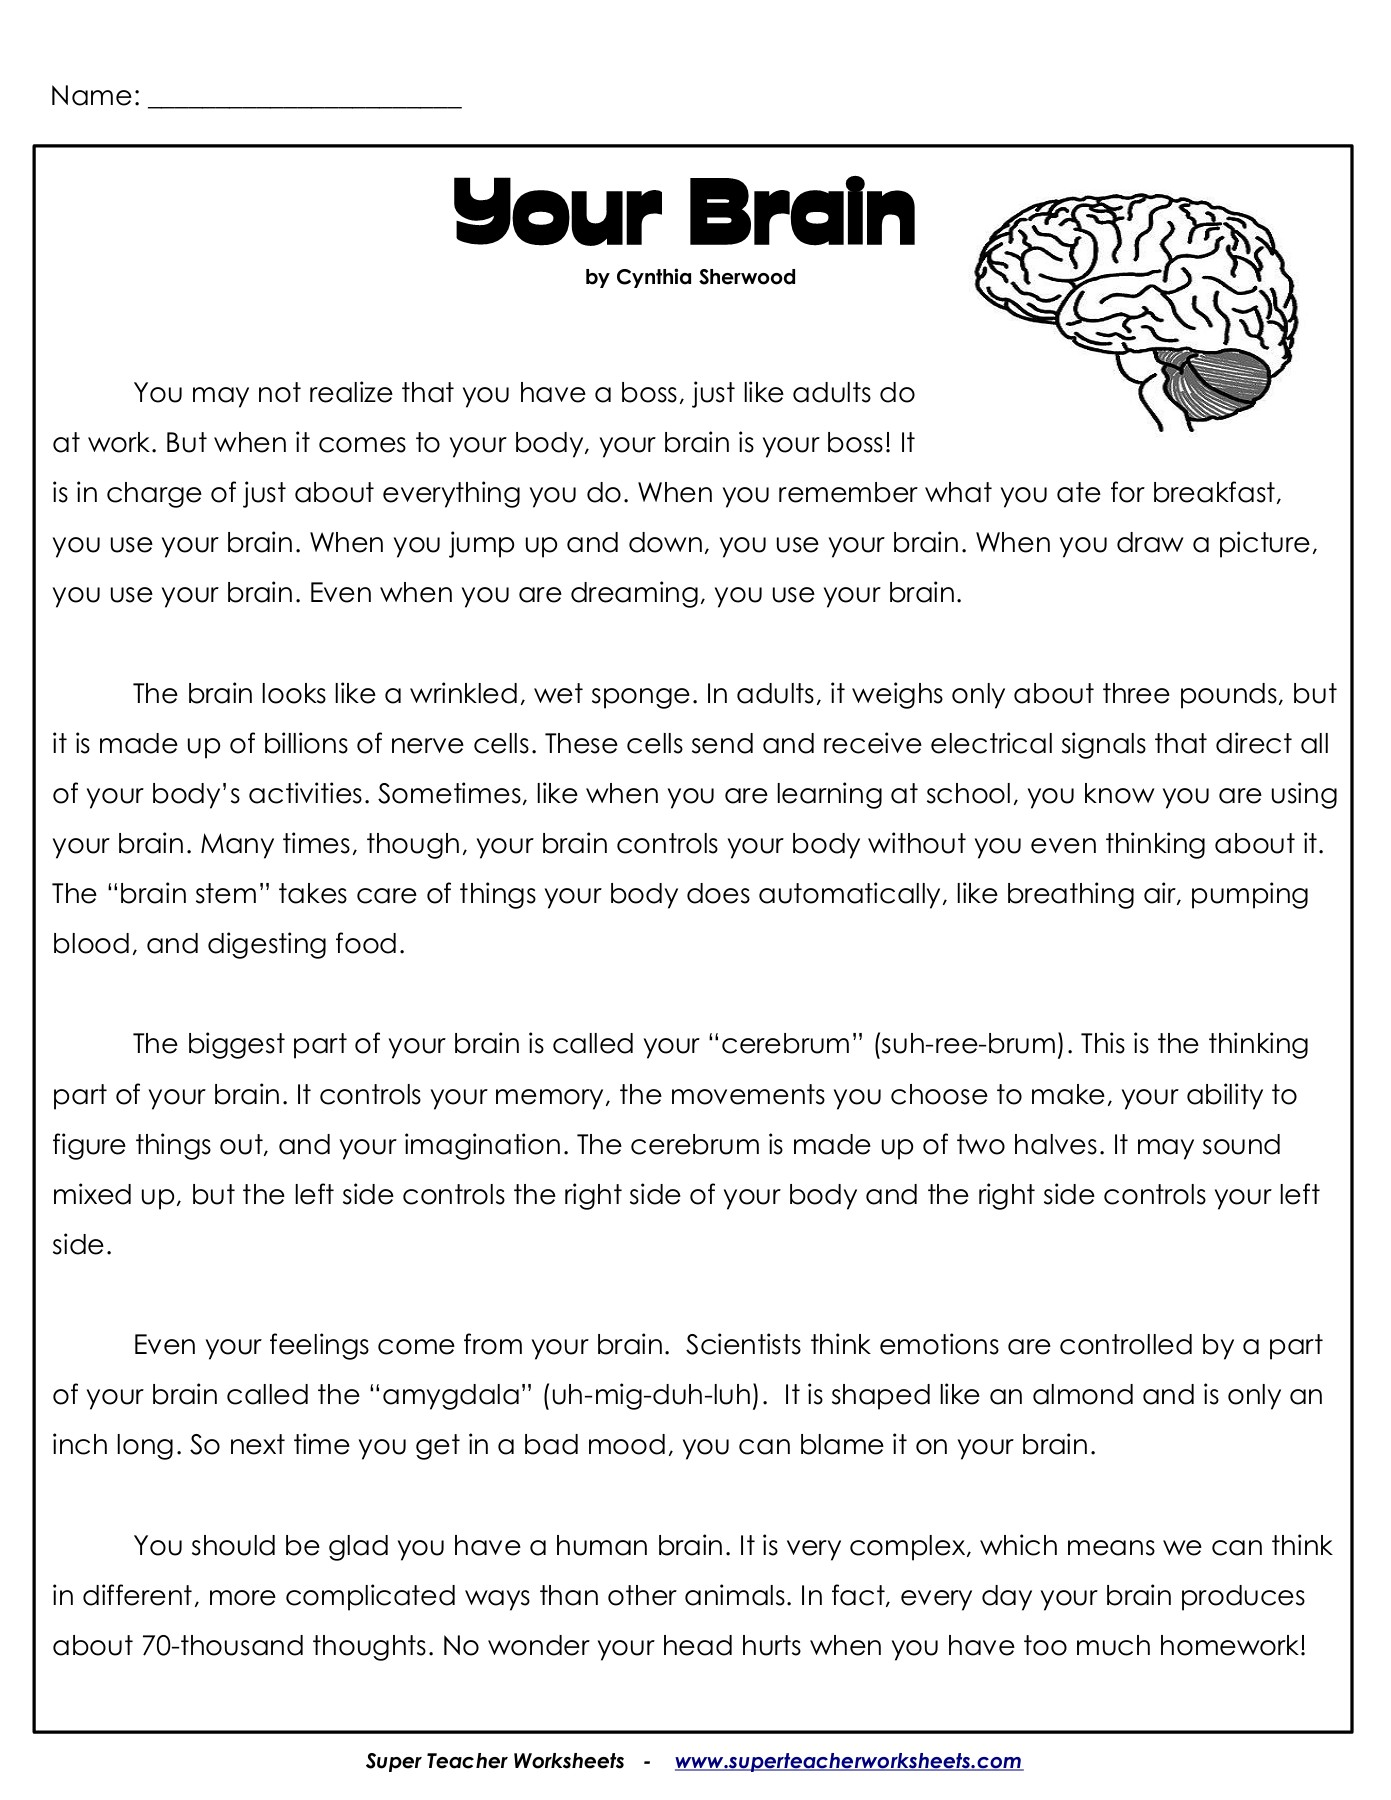 Your Brain - superteacherworksheets.com